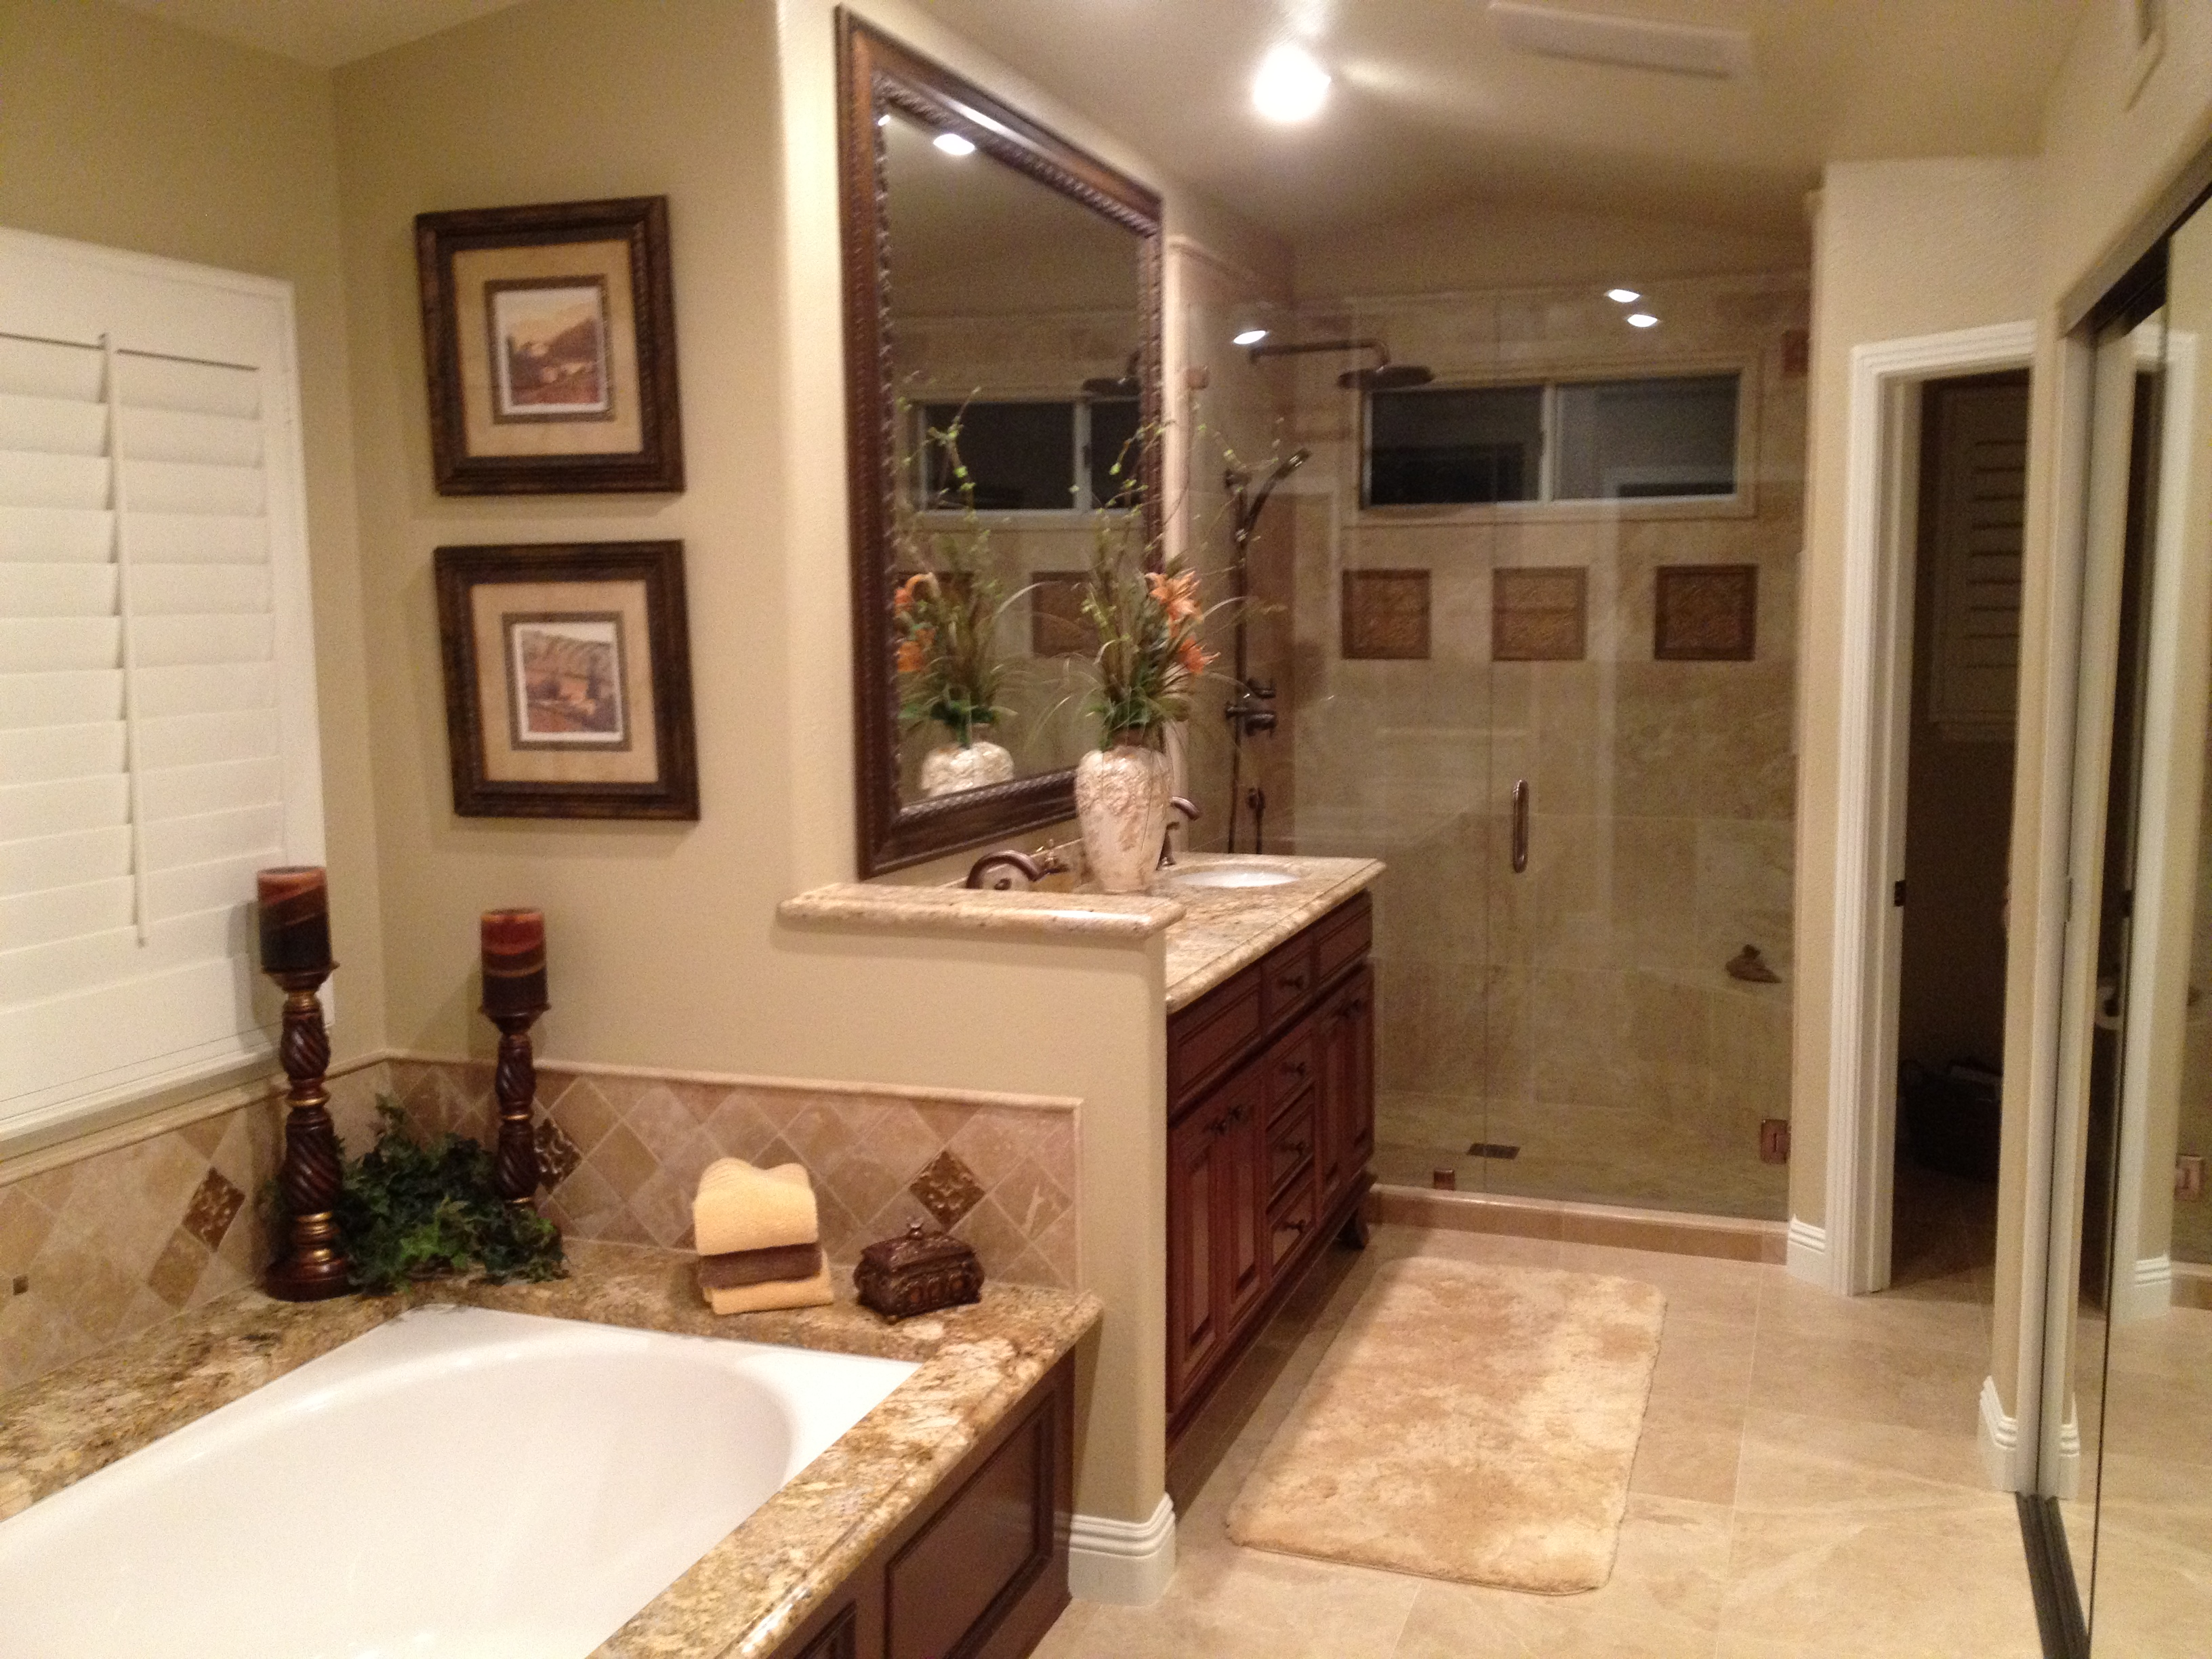 Sensational Bathroom Remodel Orange County Ca Custom Bathrooms In Beutiful Home Inspiration Semekurdistantinfo